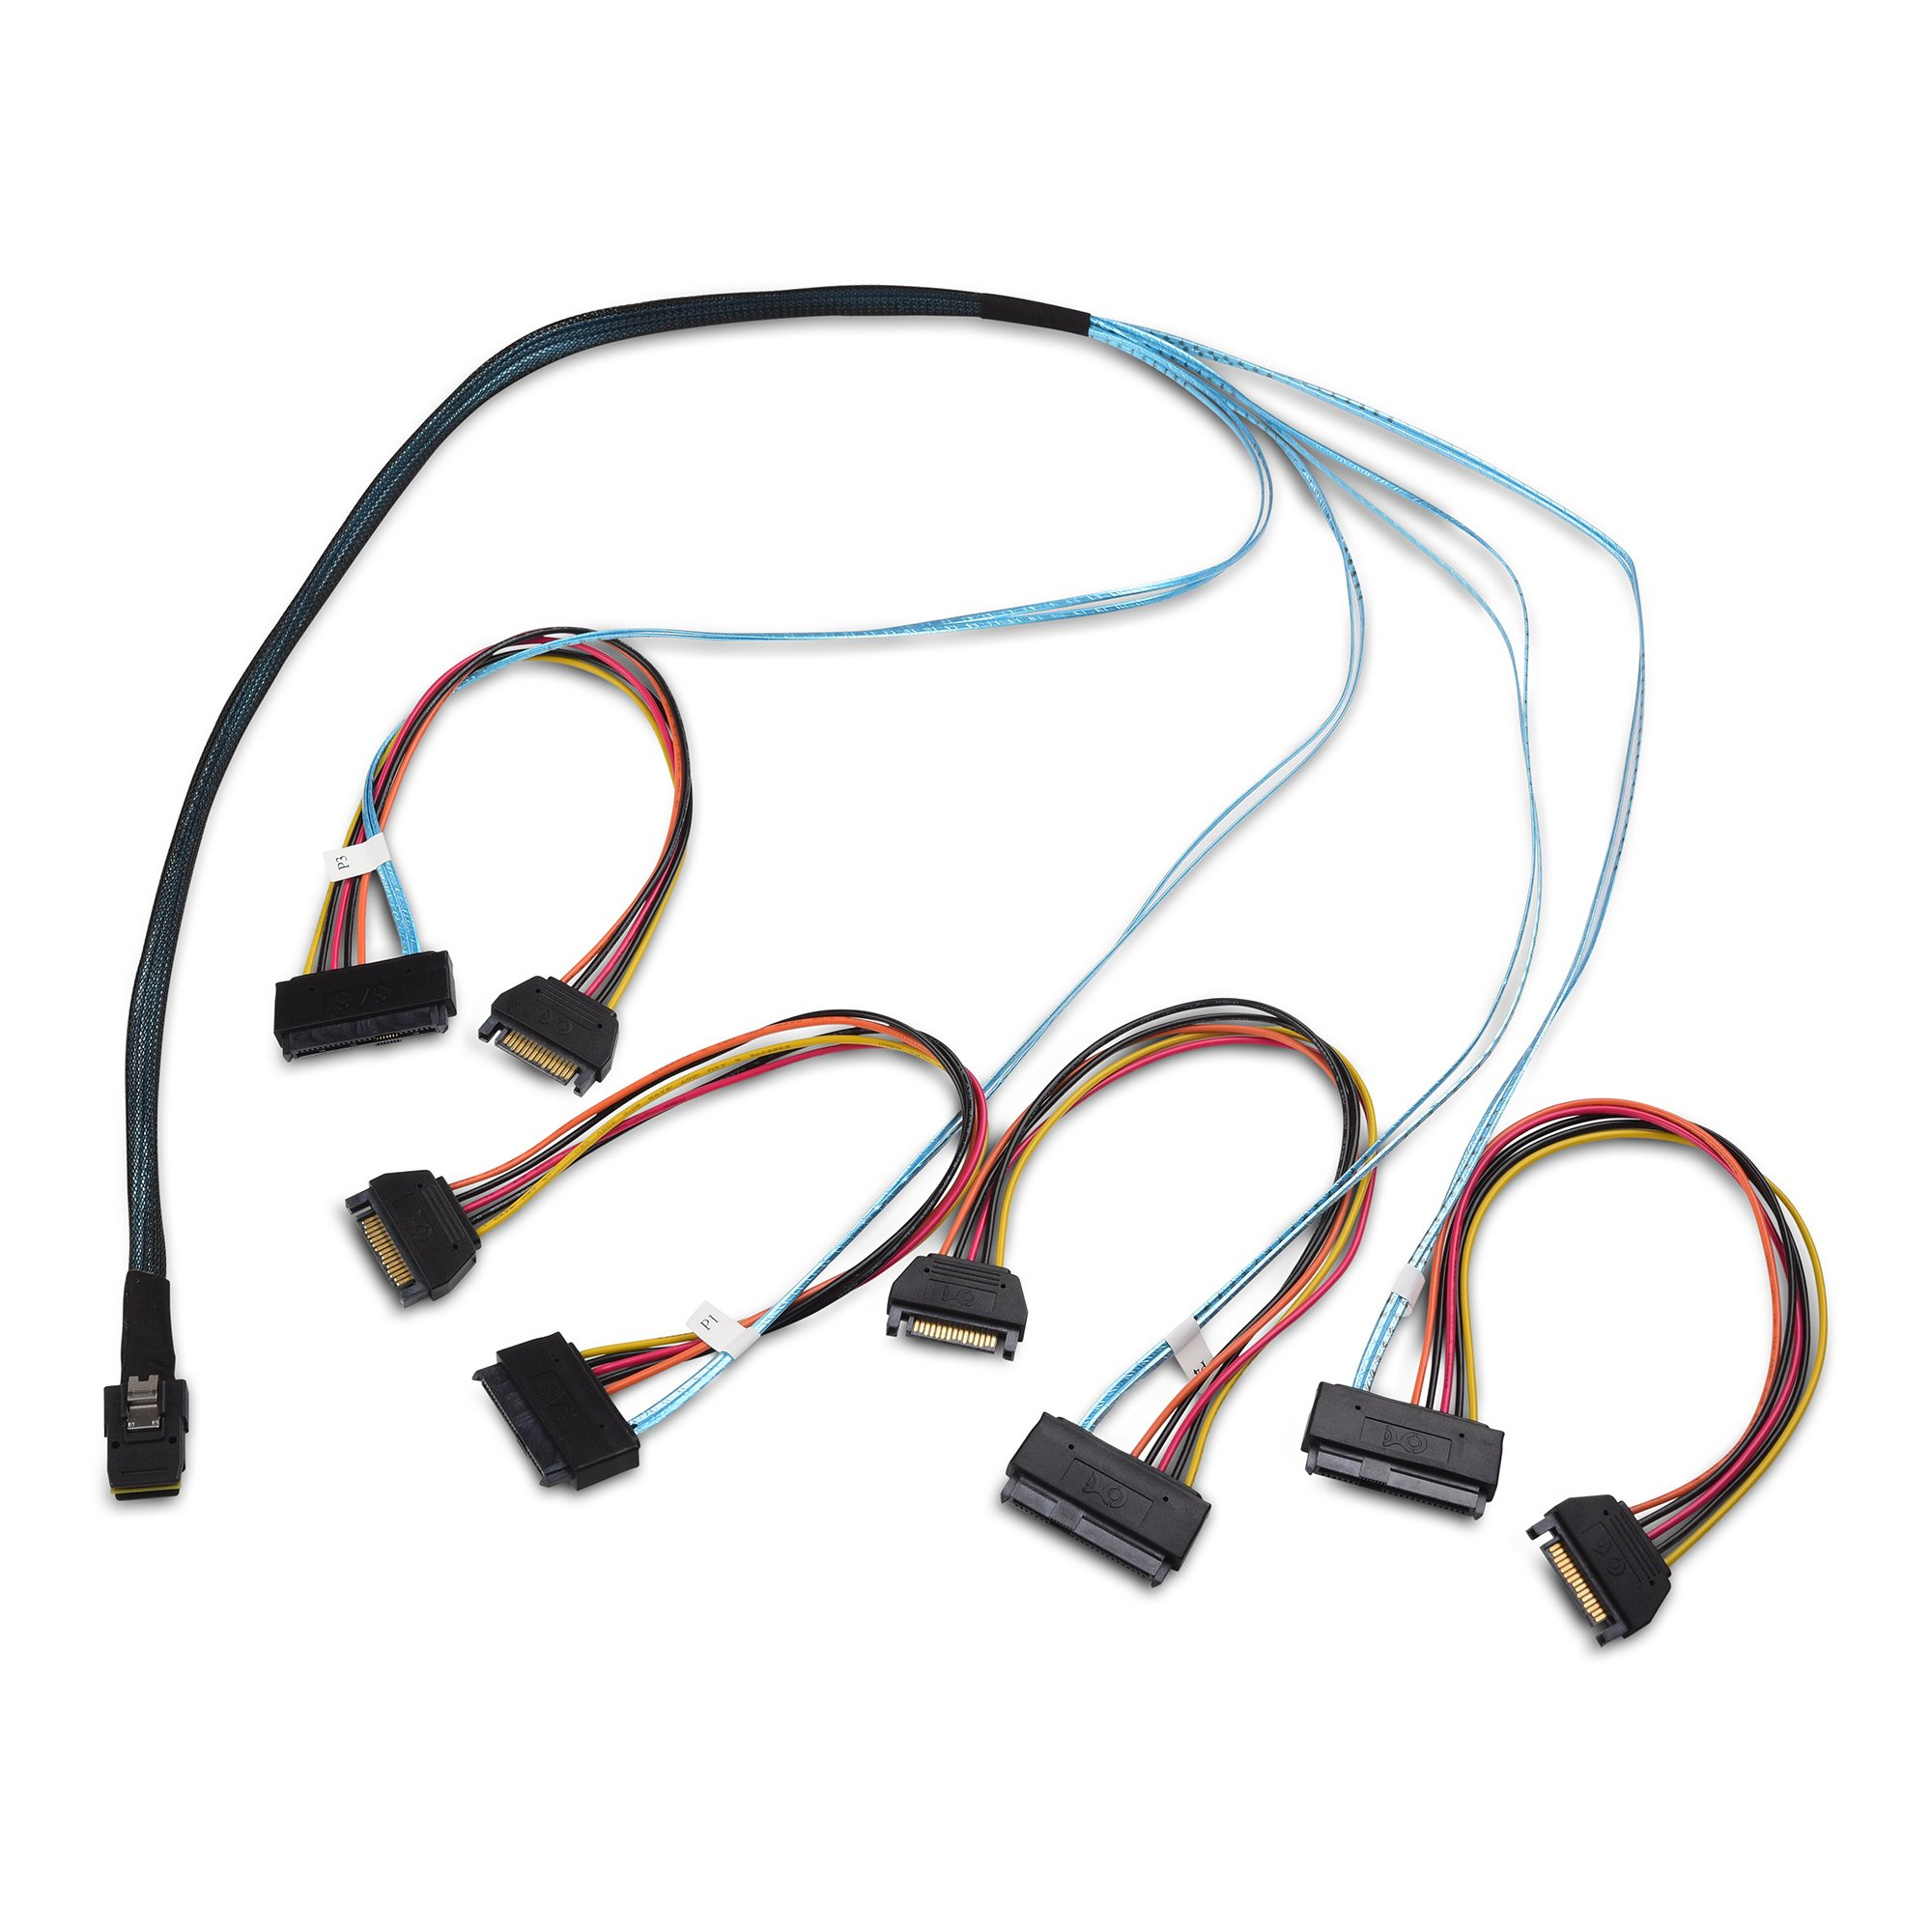 Cable Matters Internal Mini SAS to SAS Cable (SFF-8087 to SFF-8482) 3.3 Feet / 1m